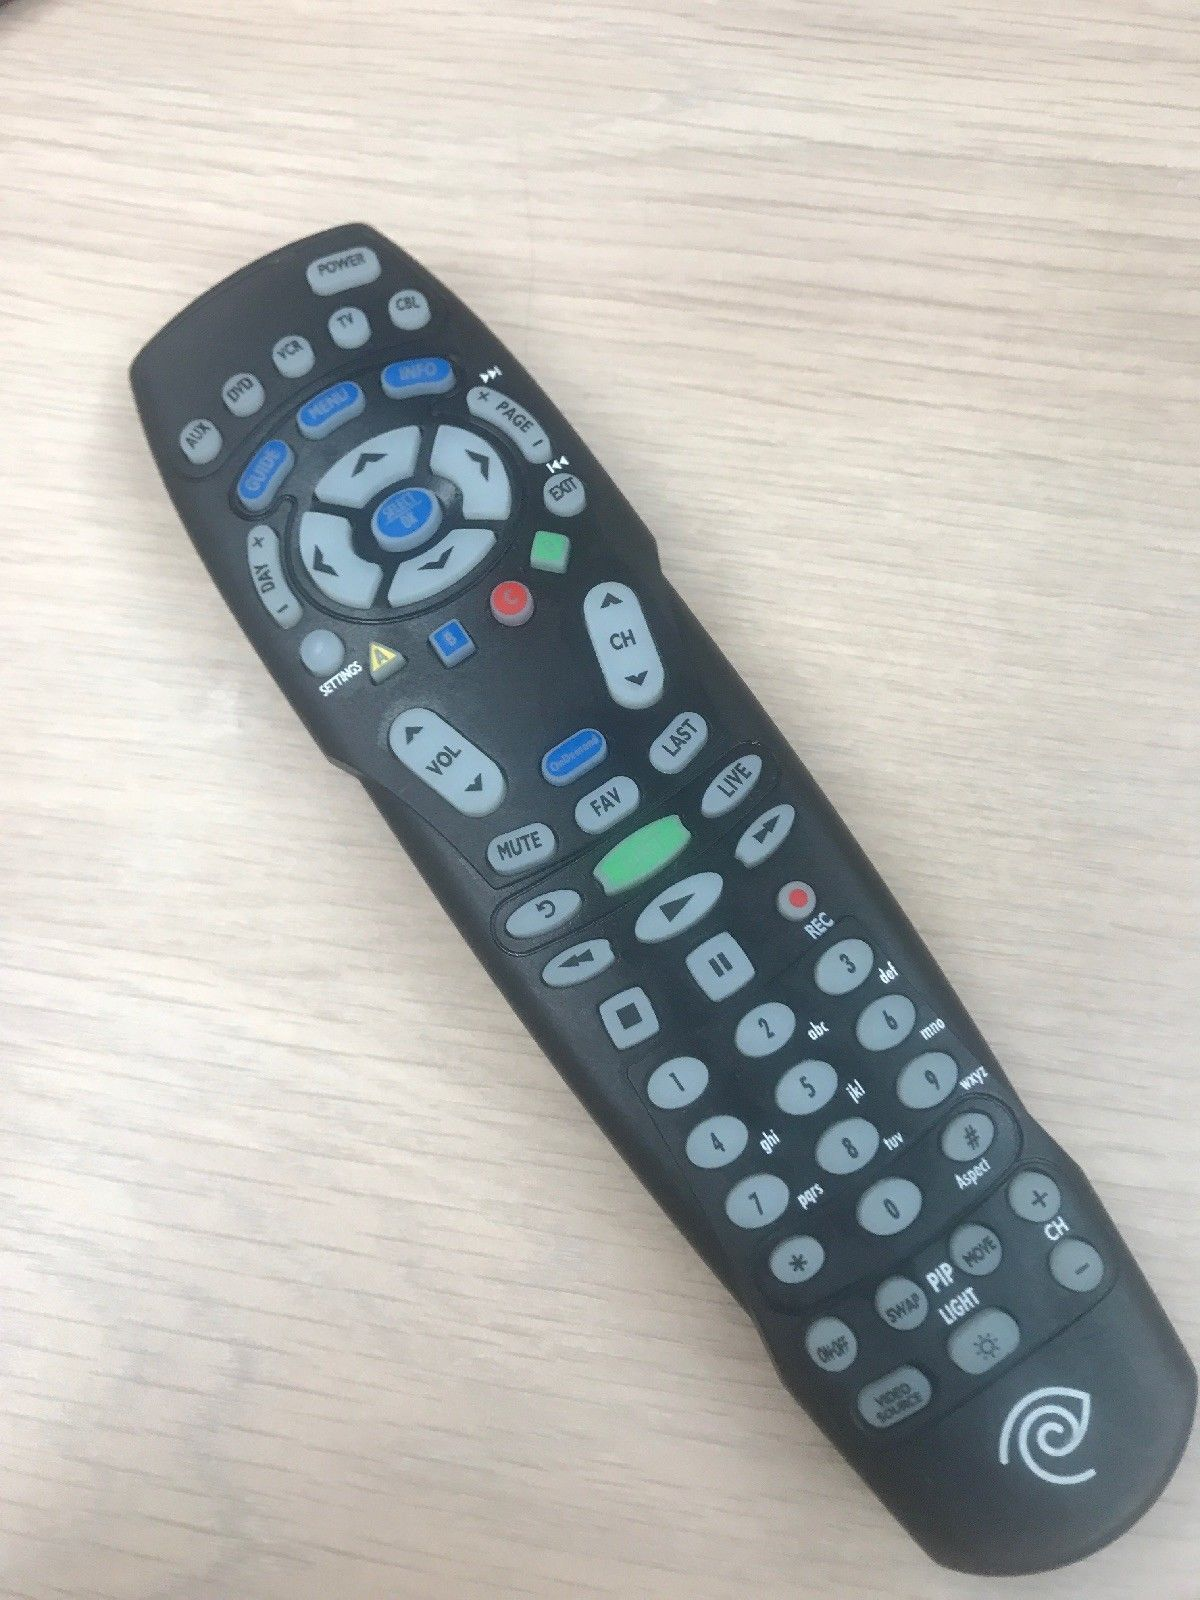 Spectrum RC122 TV Universal Remote Control Time Warner Charter -Tested- (V1)